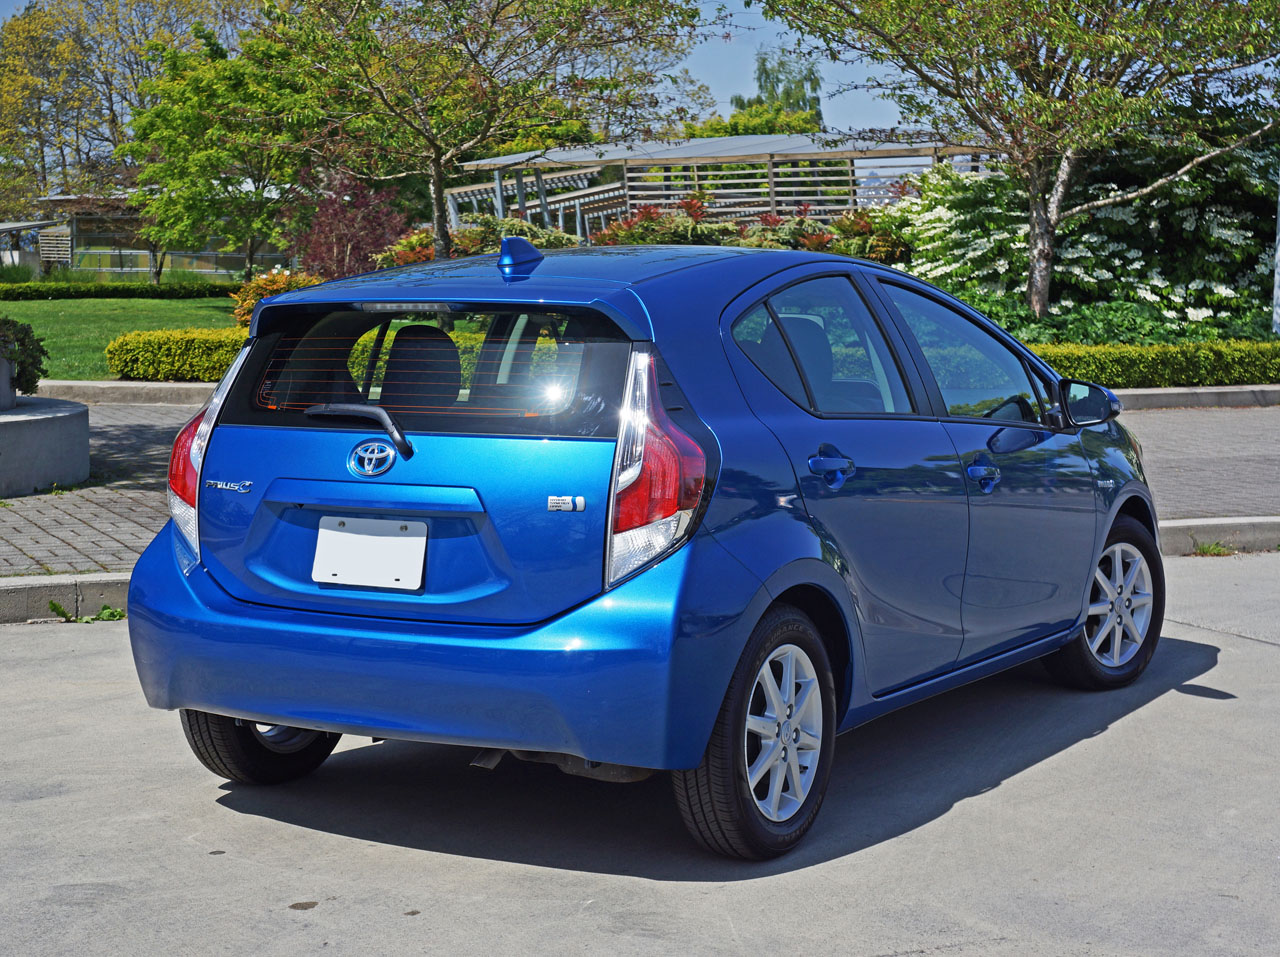 2015 toyota prius c technology road test review carcostcanada. Black Bedroom Furniture Sets. Home Design Ideas